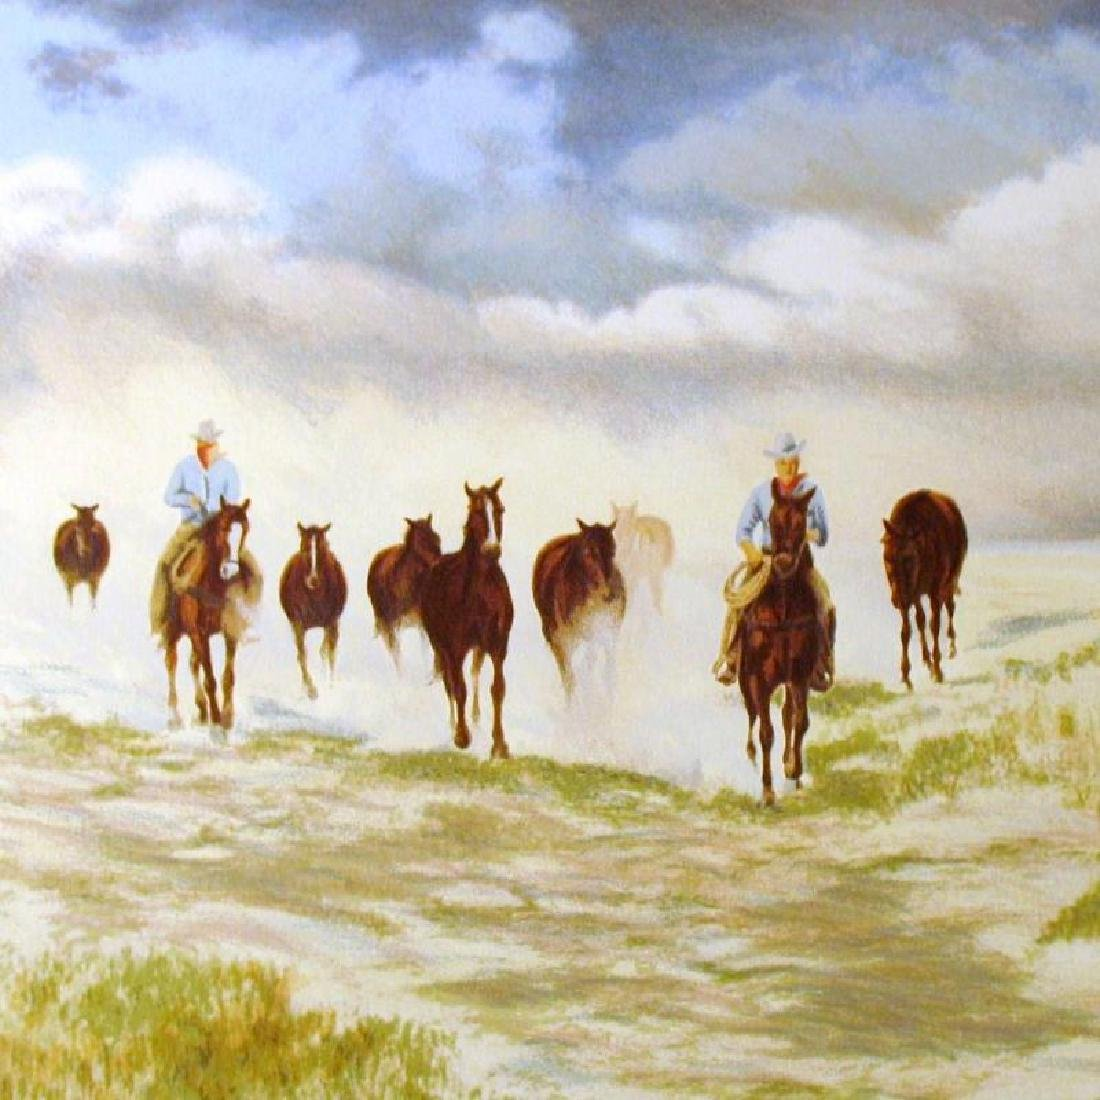 Realistic Western Scene Cowbays On Horses Ltd Ed - 3